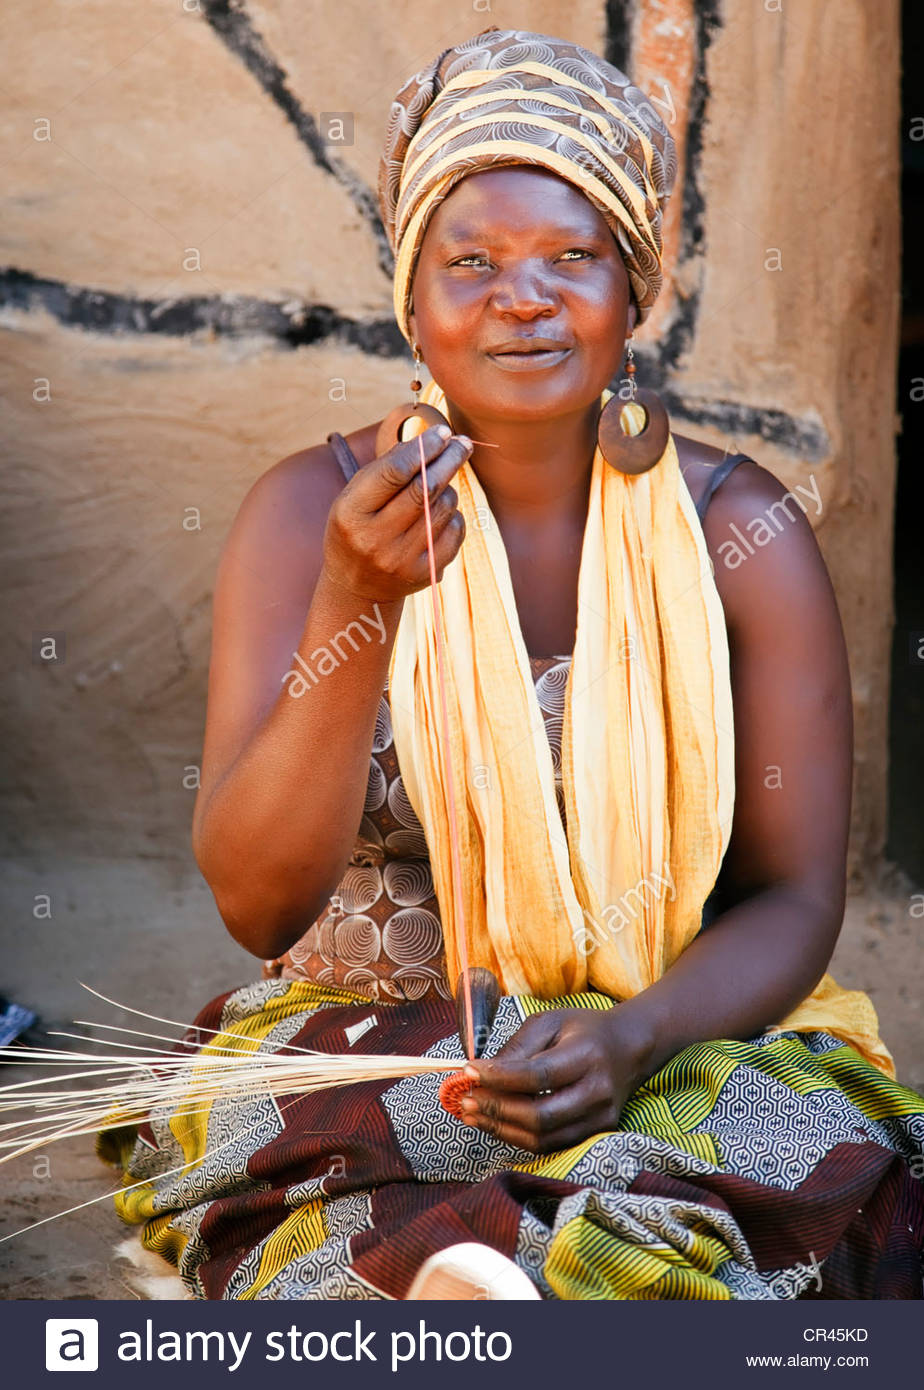 Woman Doing Handicraft Stock Photos Woman Doing Handicraft Stock